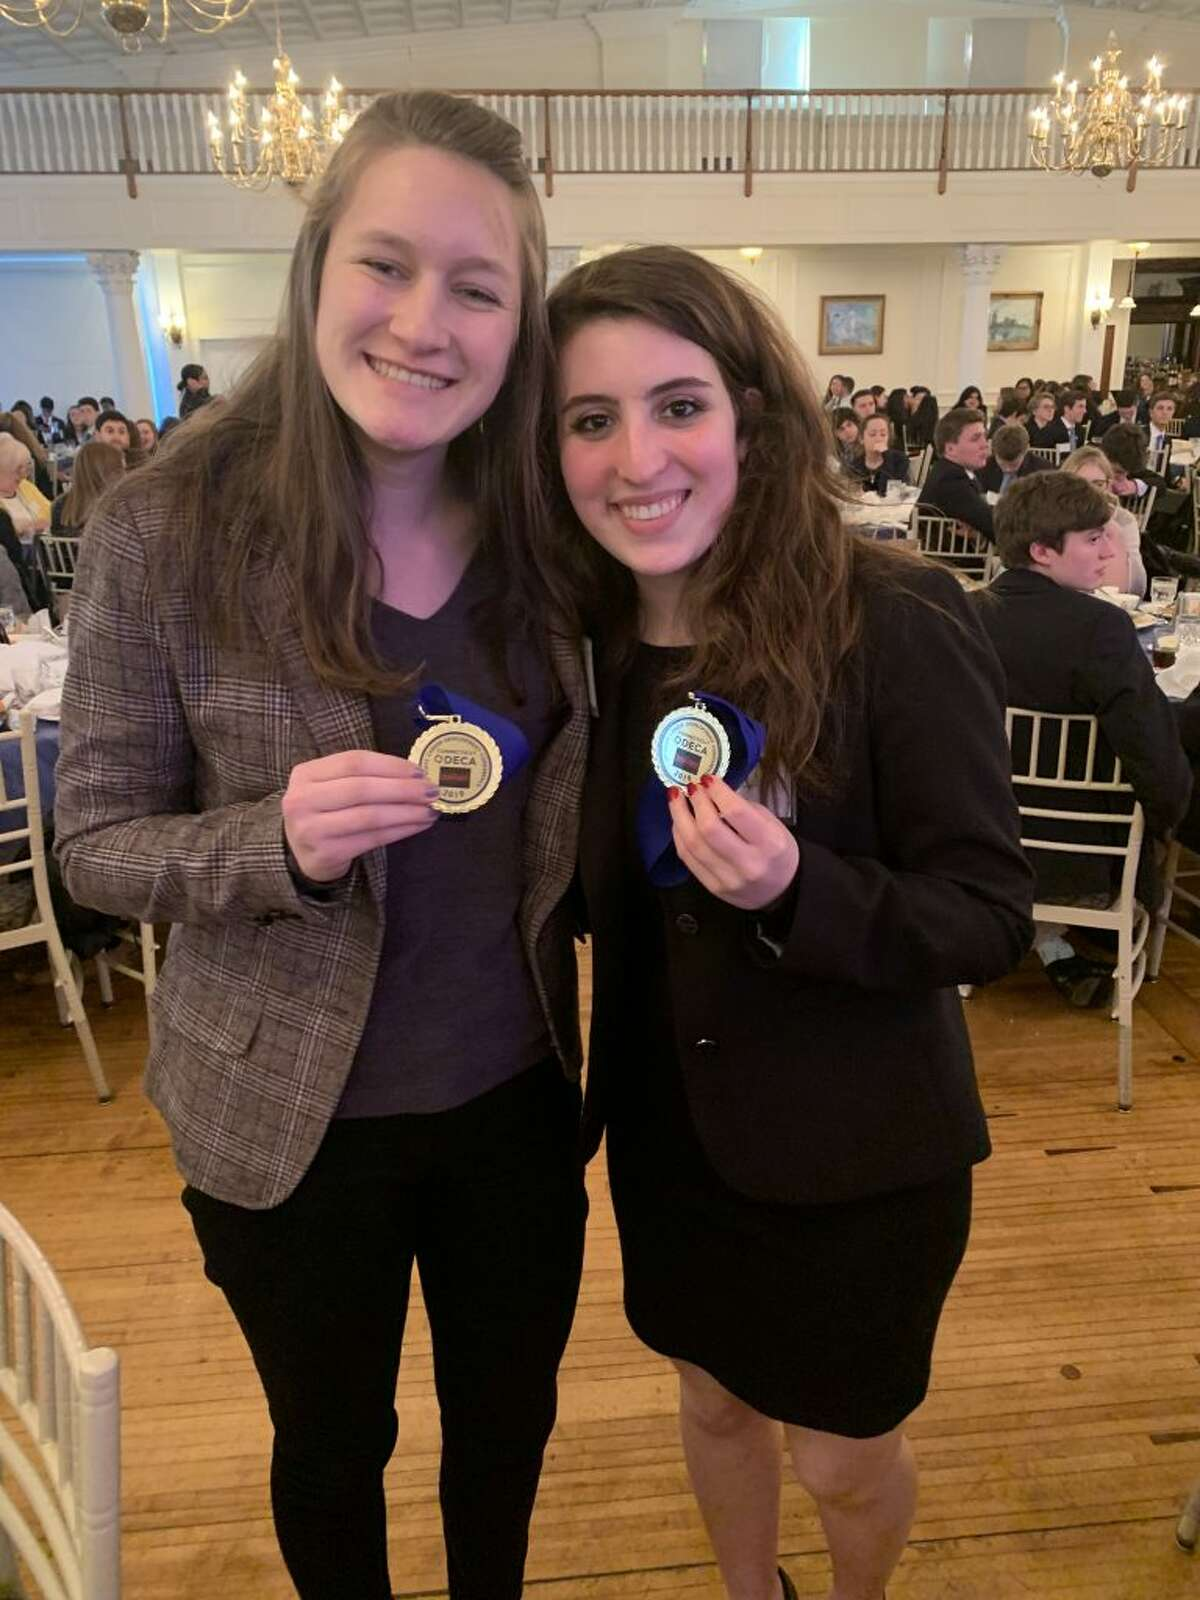 Ridgefield High School senior Allison Catizone and RHS sophomore Avery Simoneau placed sixth in the financial services category at the DECA state competition on March 5.